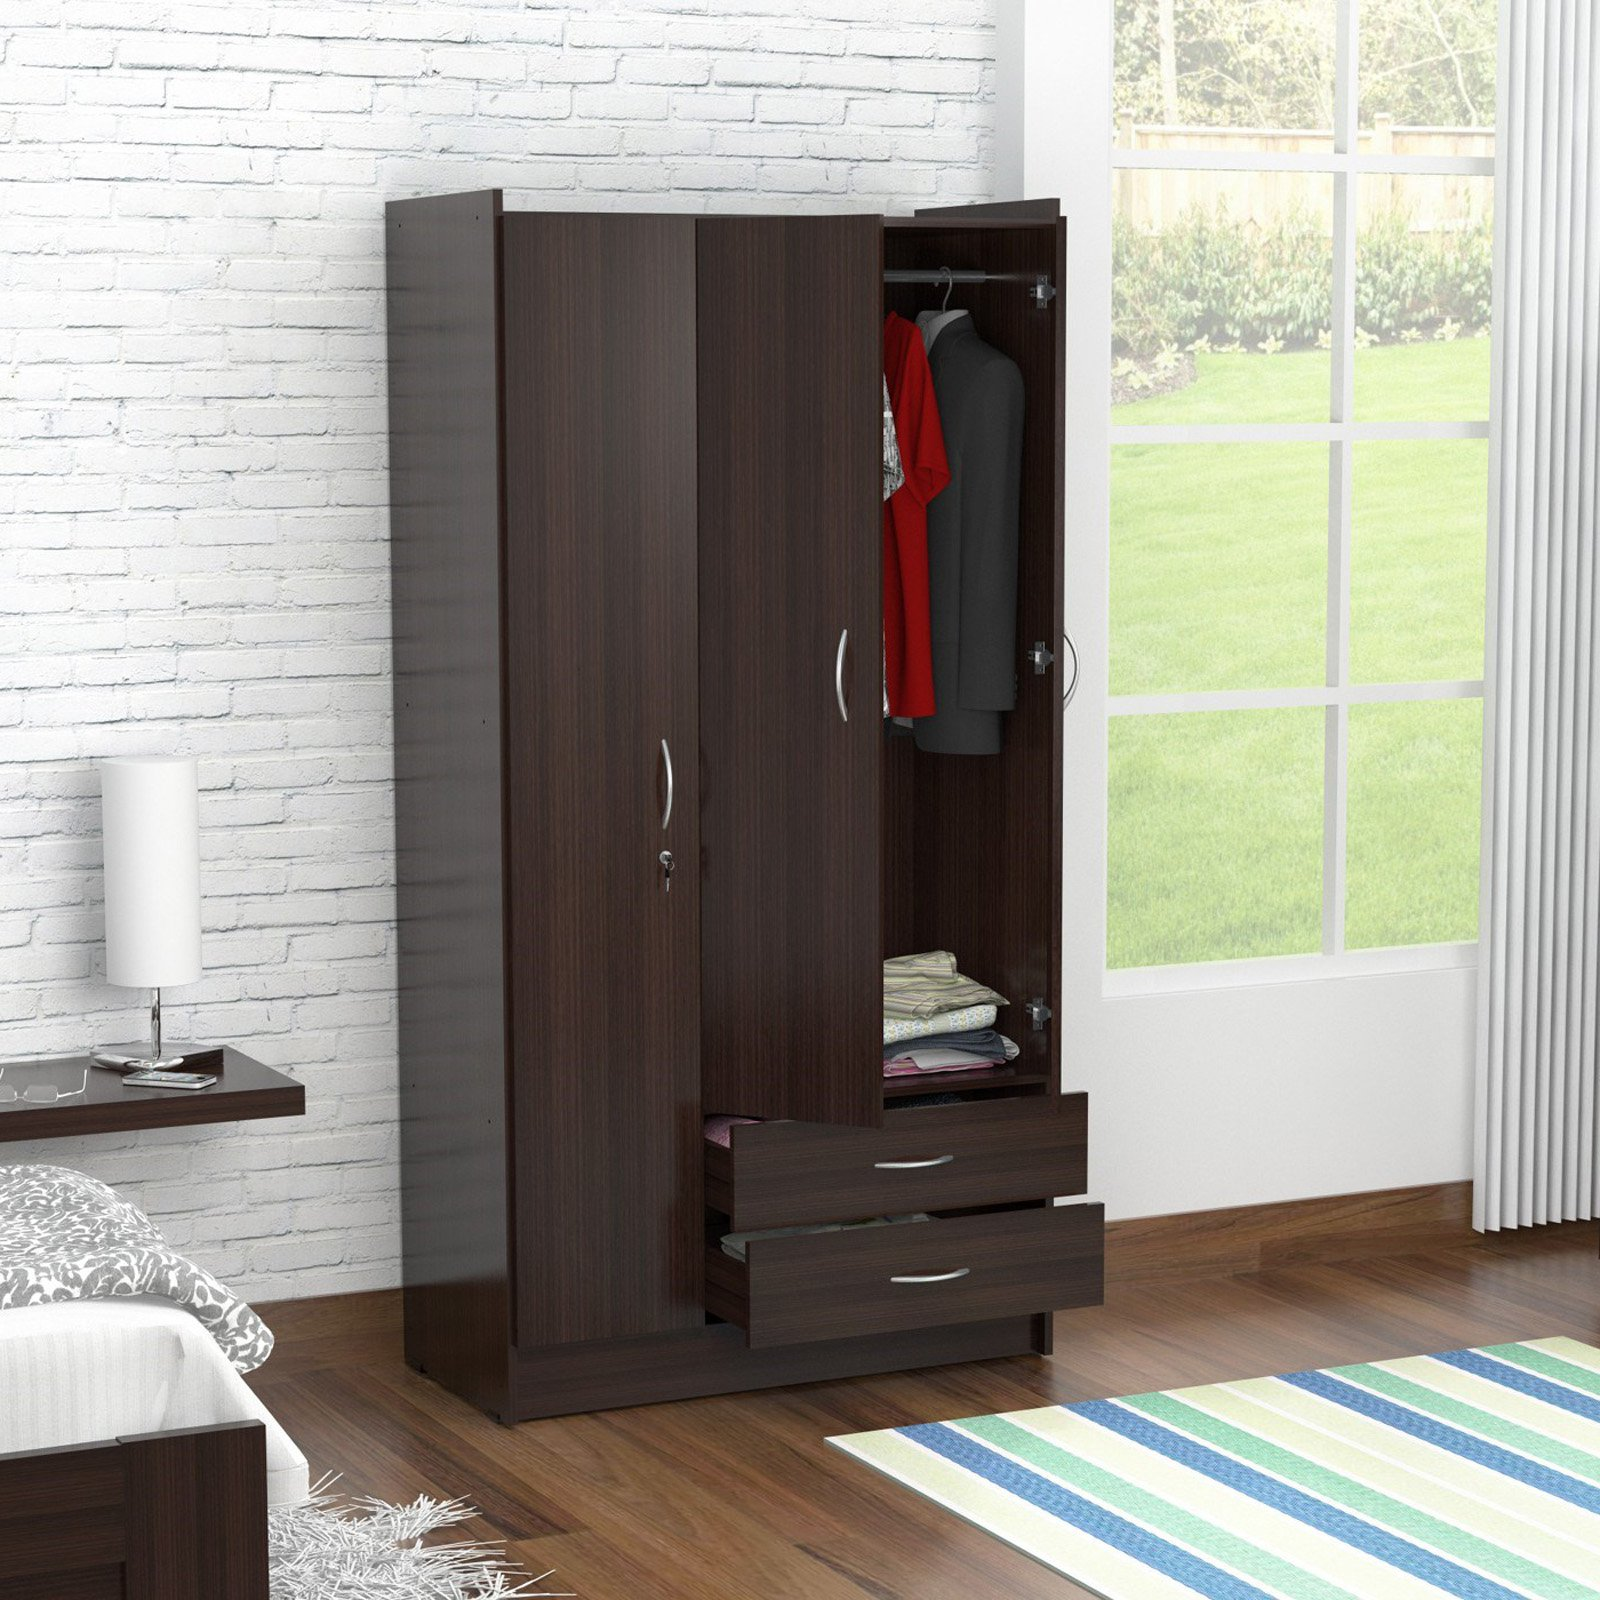 Inval Three Door Wardrobe Armoire, Espresso-Wengue Finish by Inval